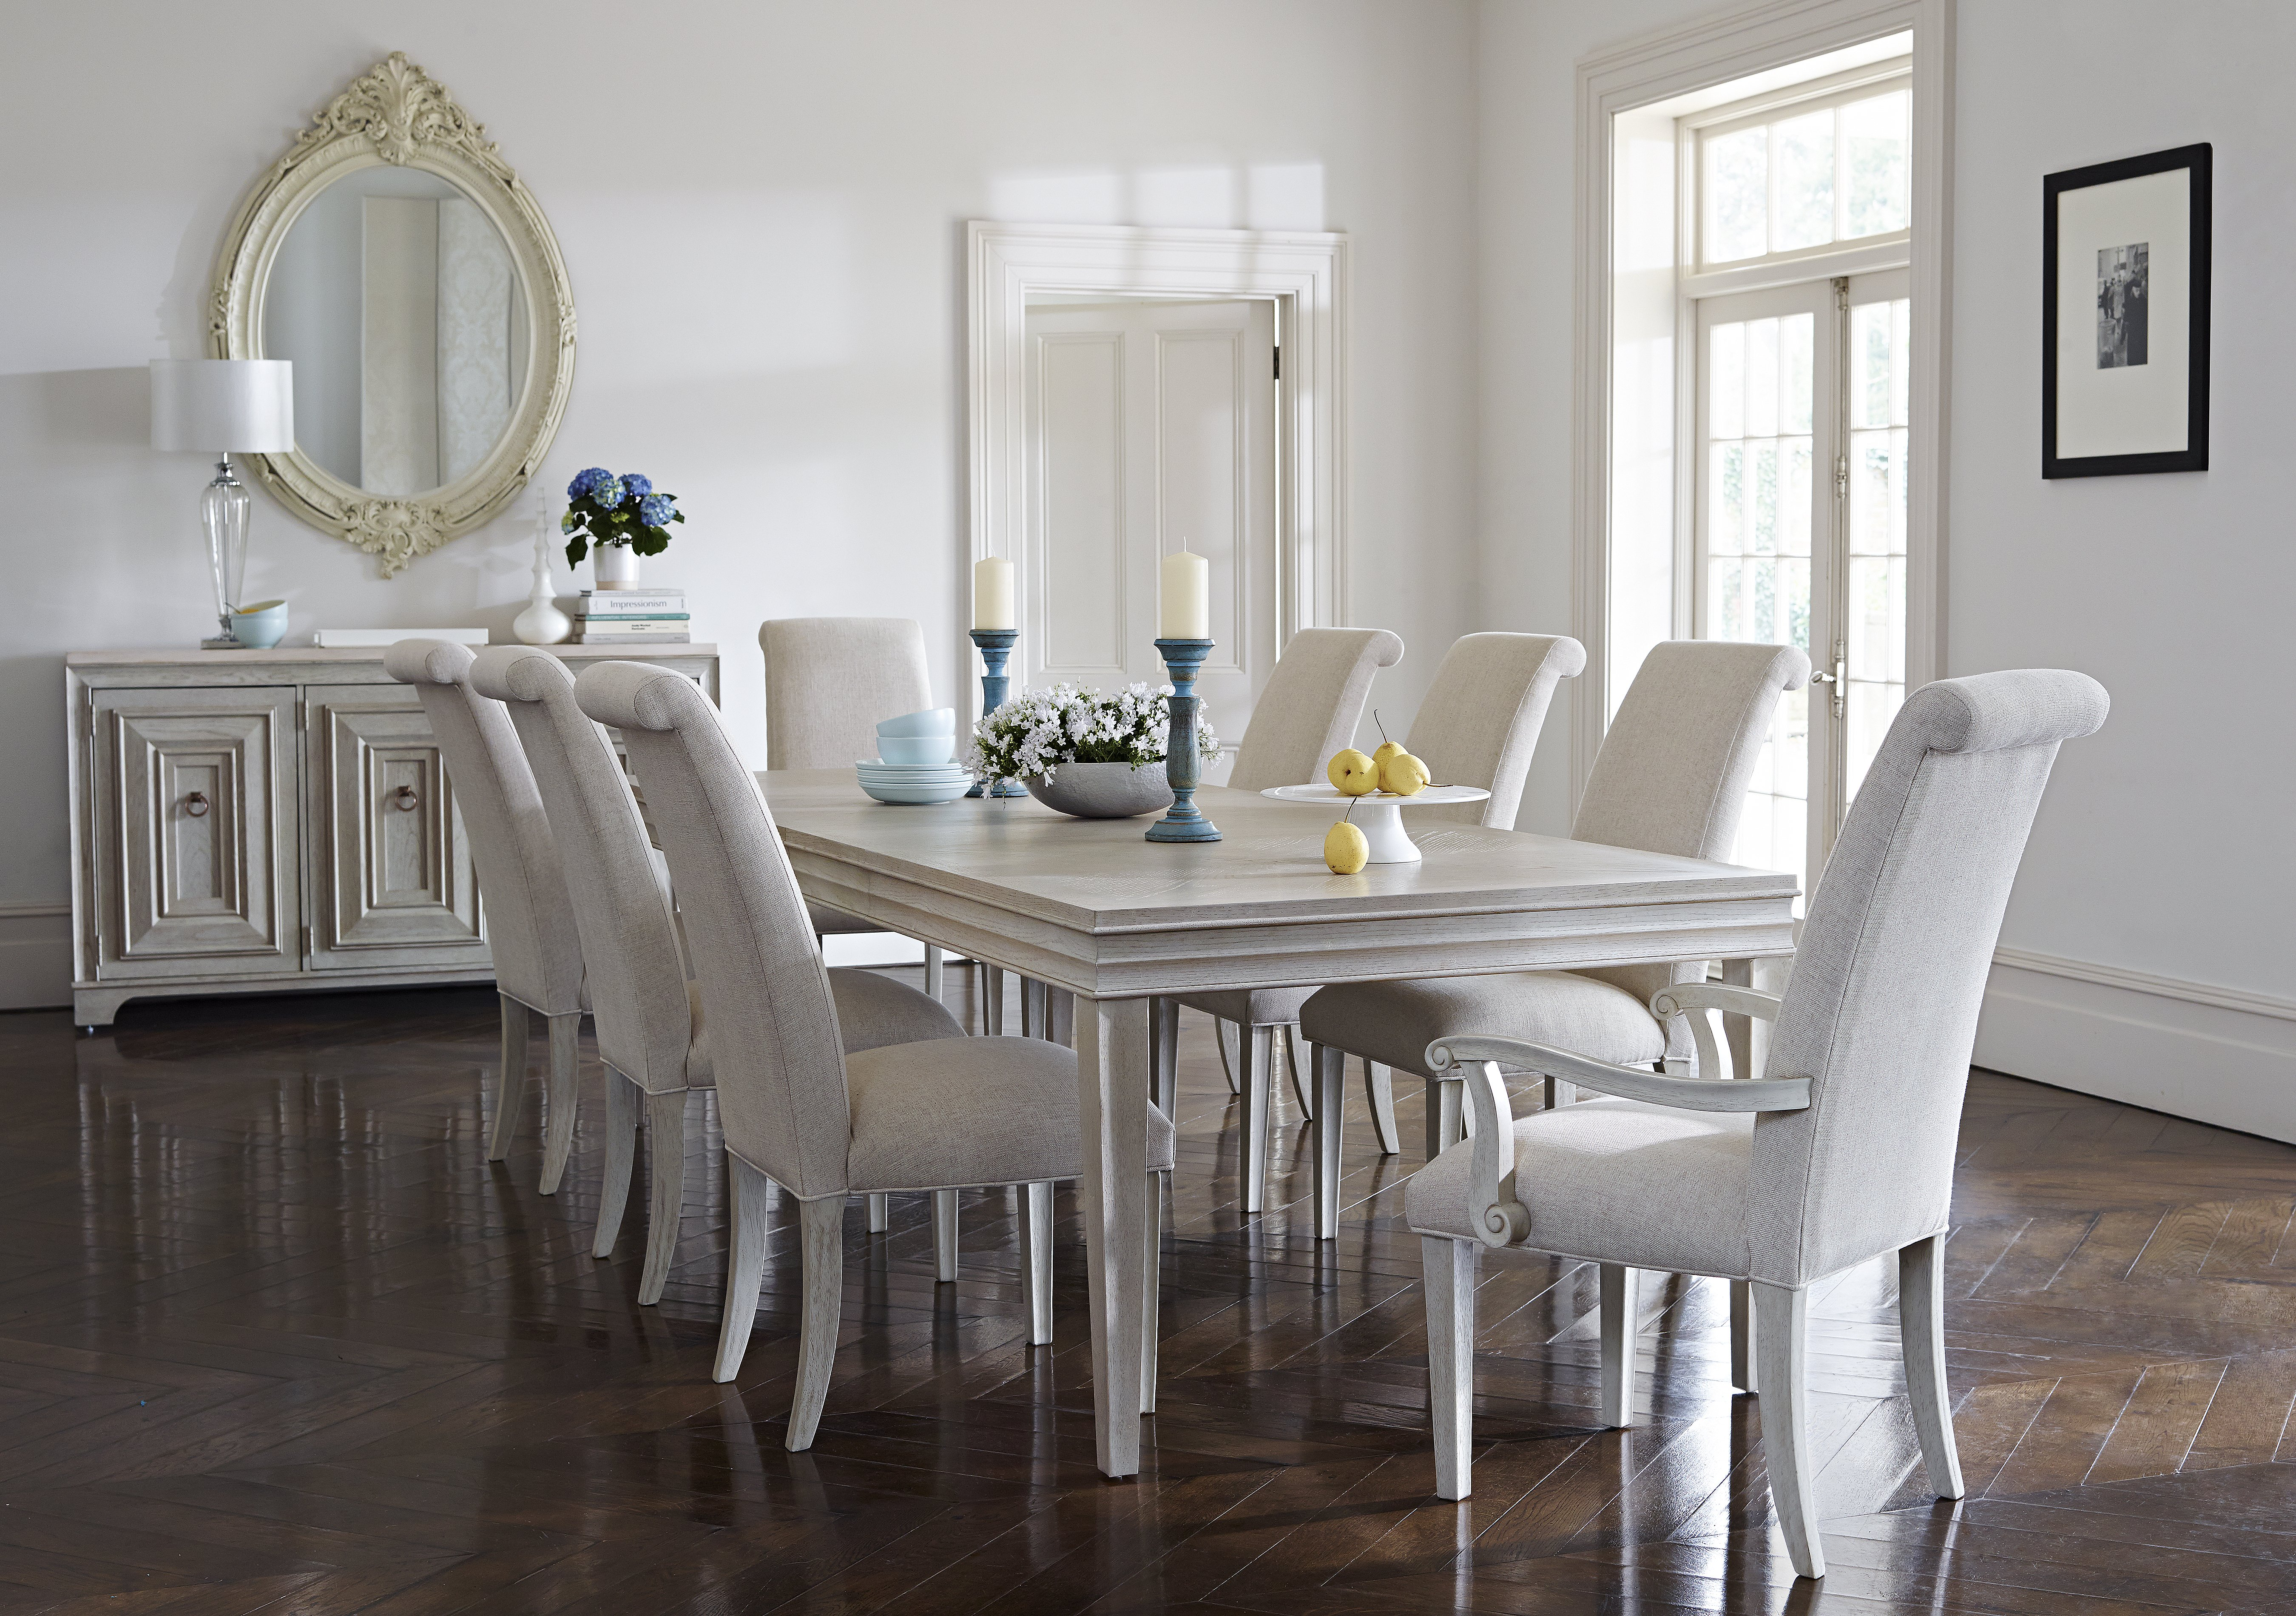 Vermont Extending Dining Table Willis and Gambier Furniture